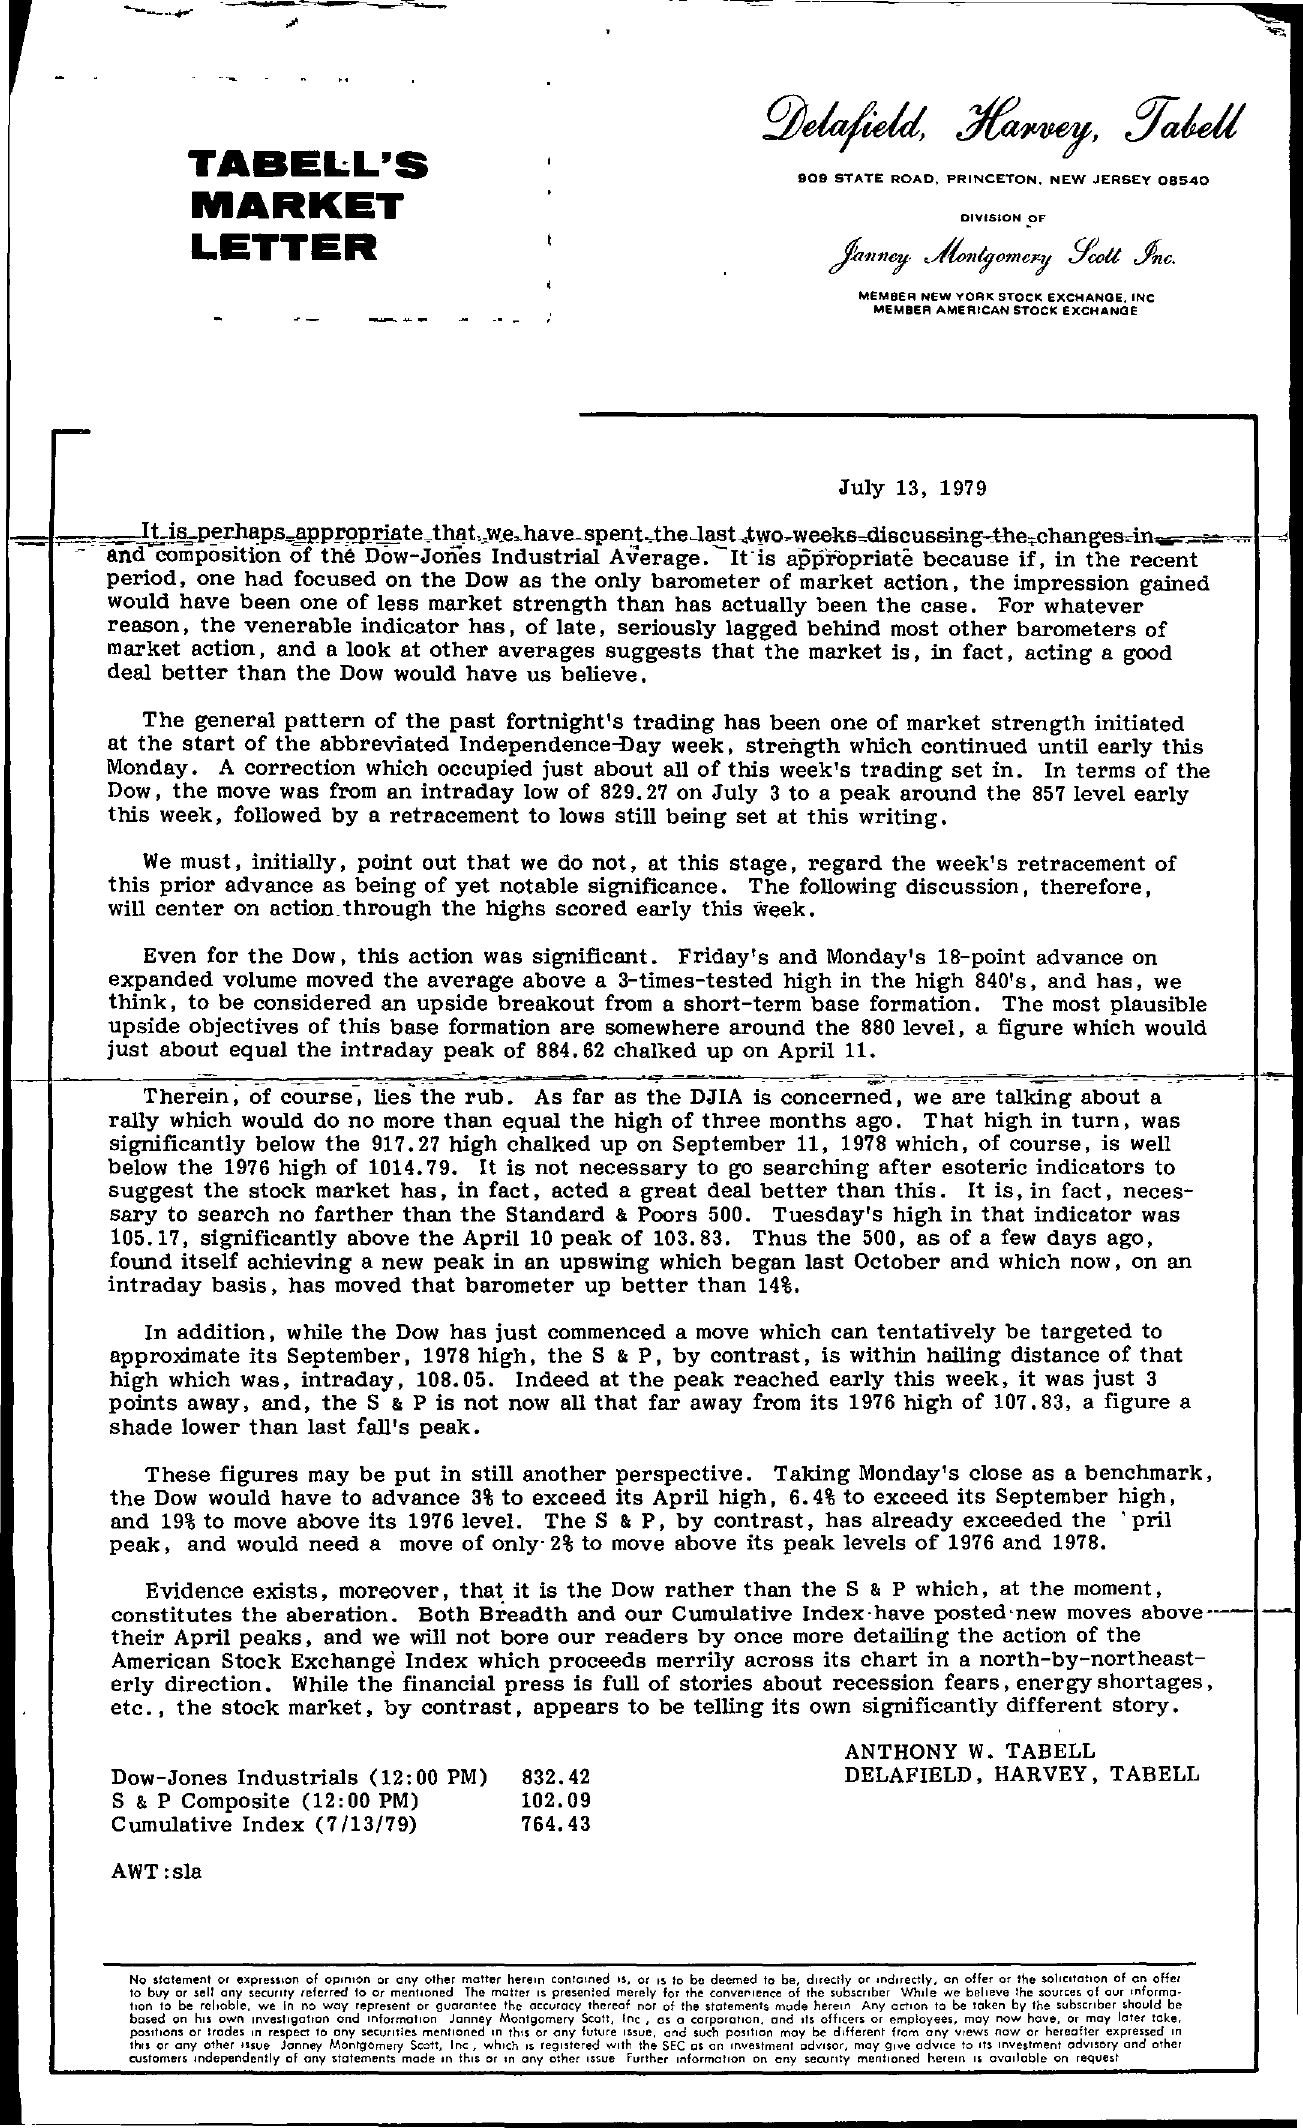 Tabell's Market Letter - July 13, 1979